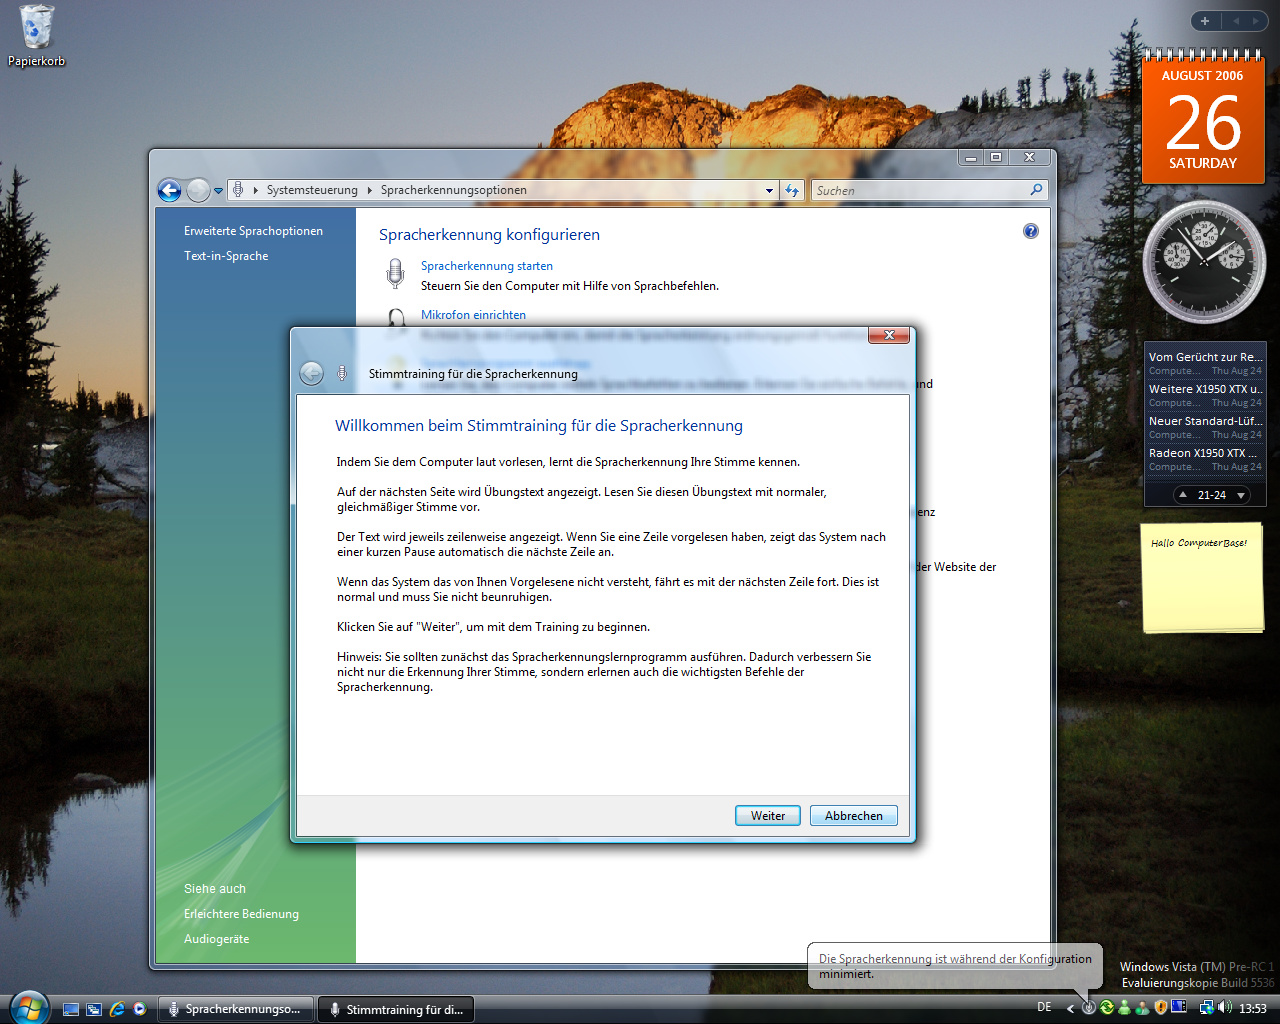 Windows Vista Build 5536 - Spracherkennung